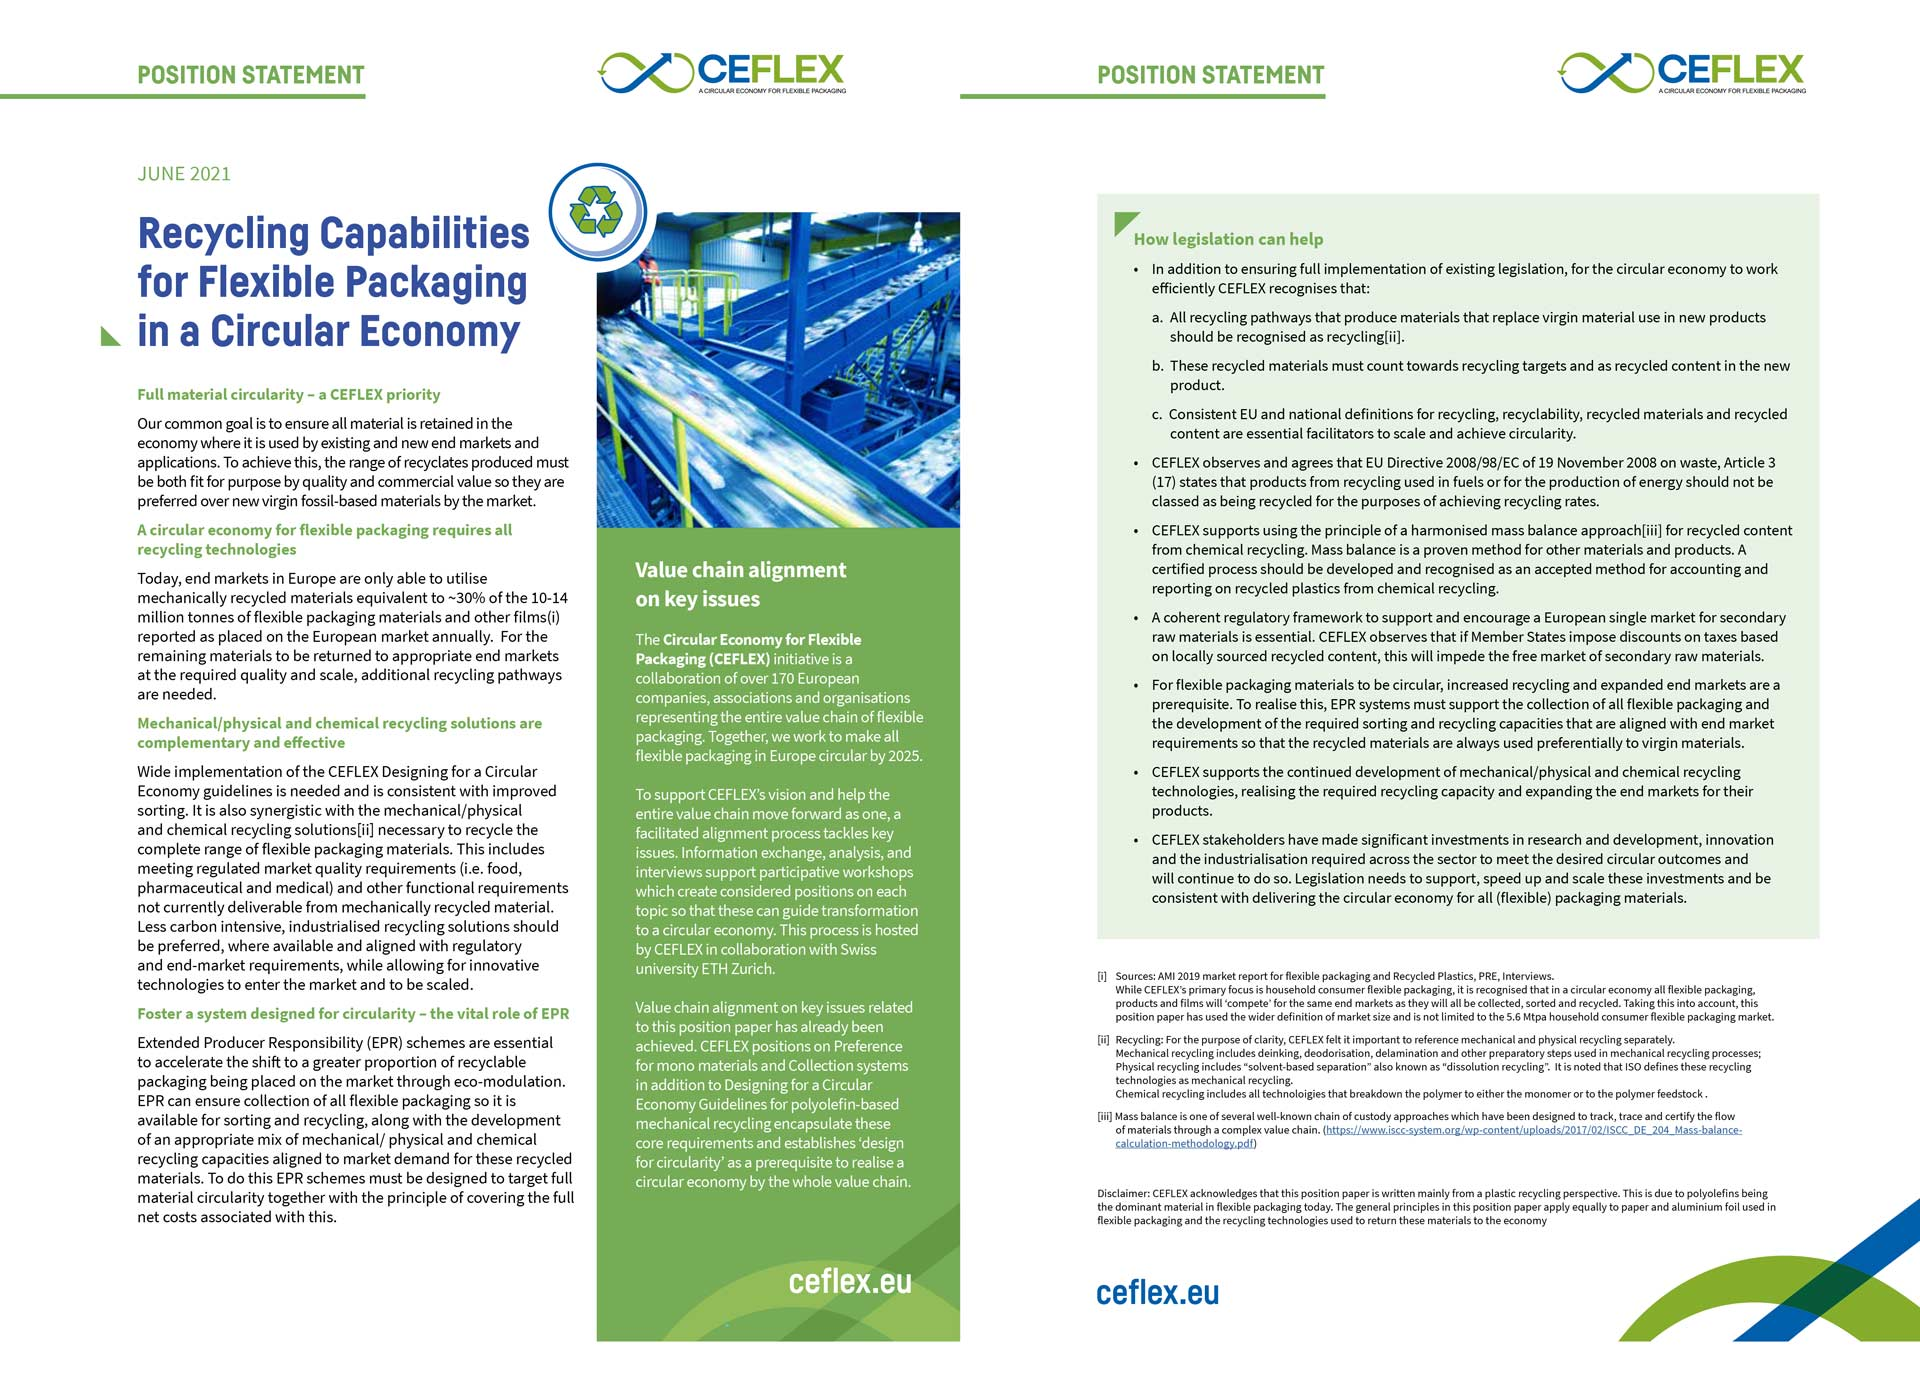 Position Statement: Recycling Capabilities for Flexible Packaging in a Circular Economy